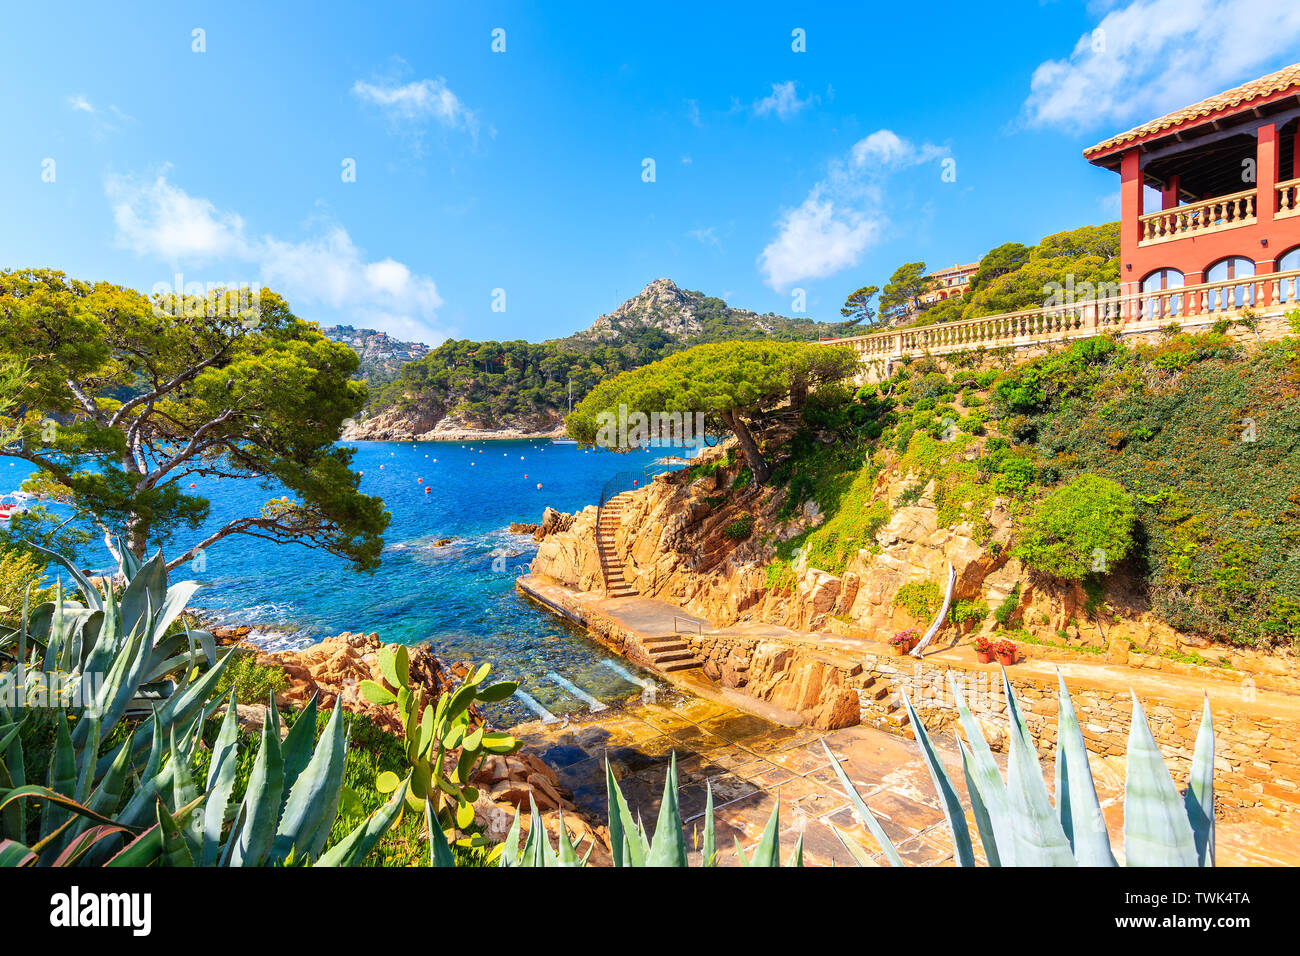 View of coastal path and sea in picturesque port of Fornells village, Costa Brava, Spain Stock Photo